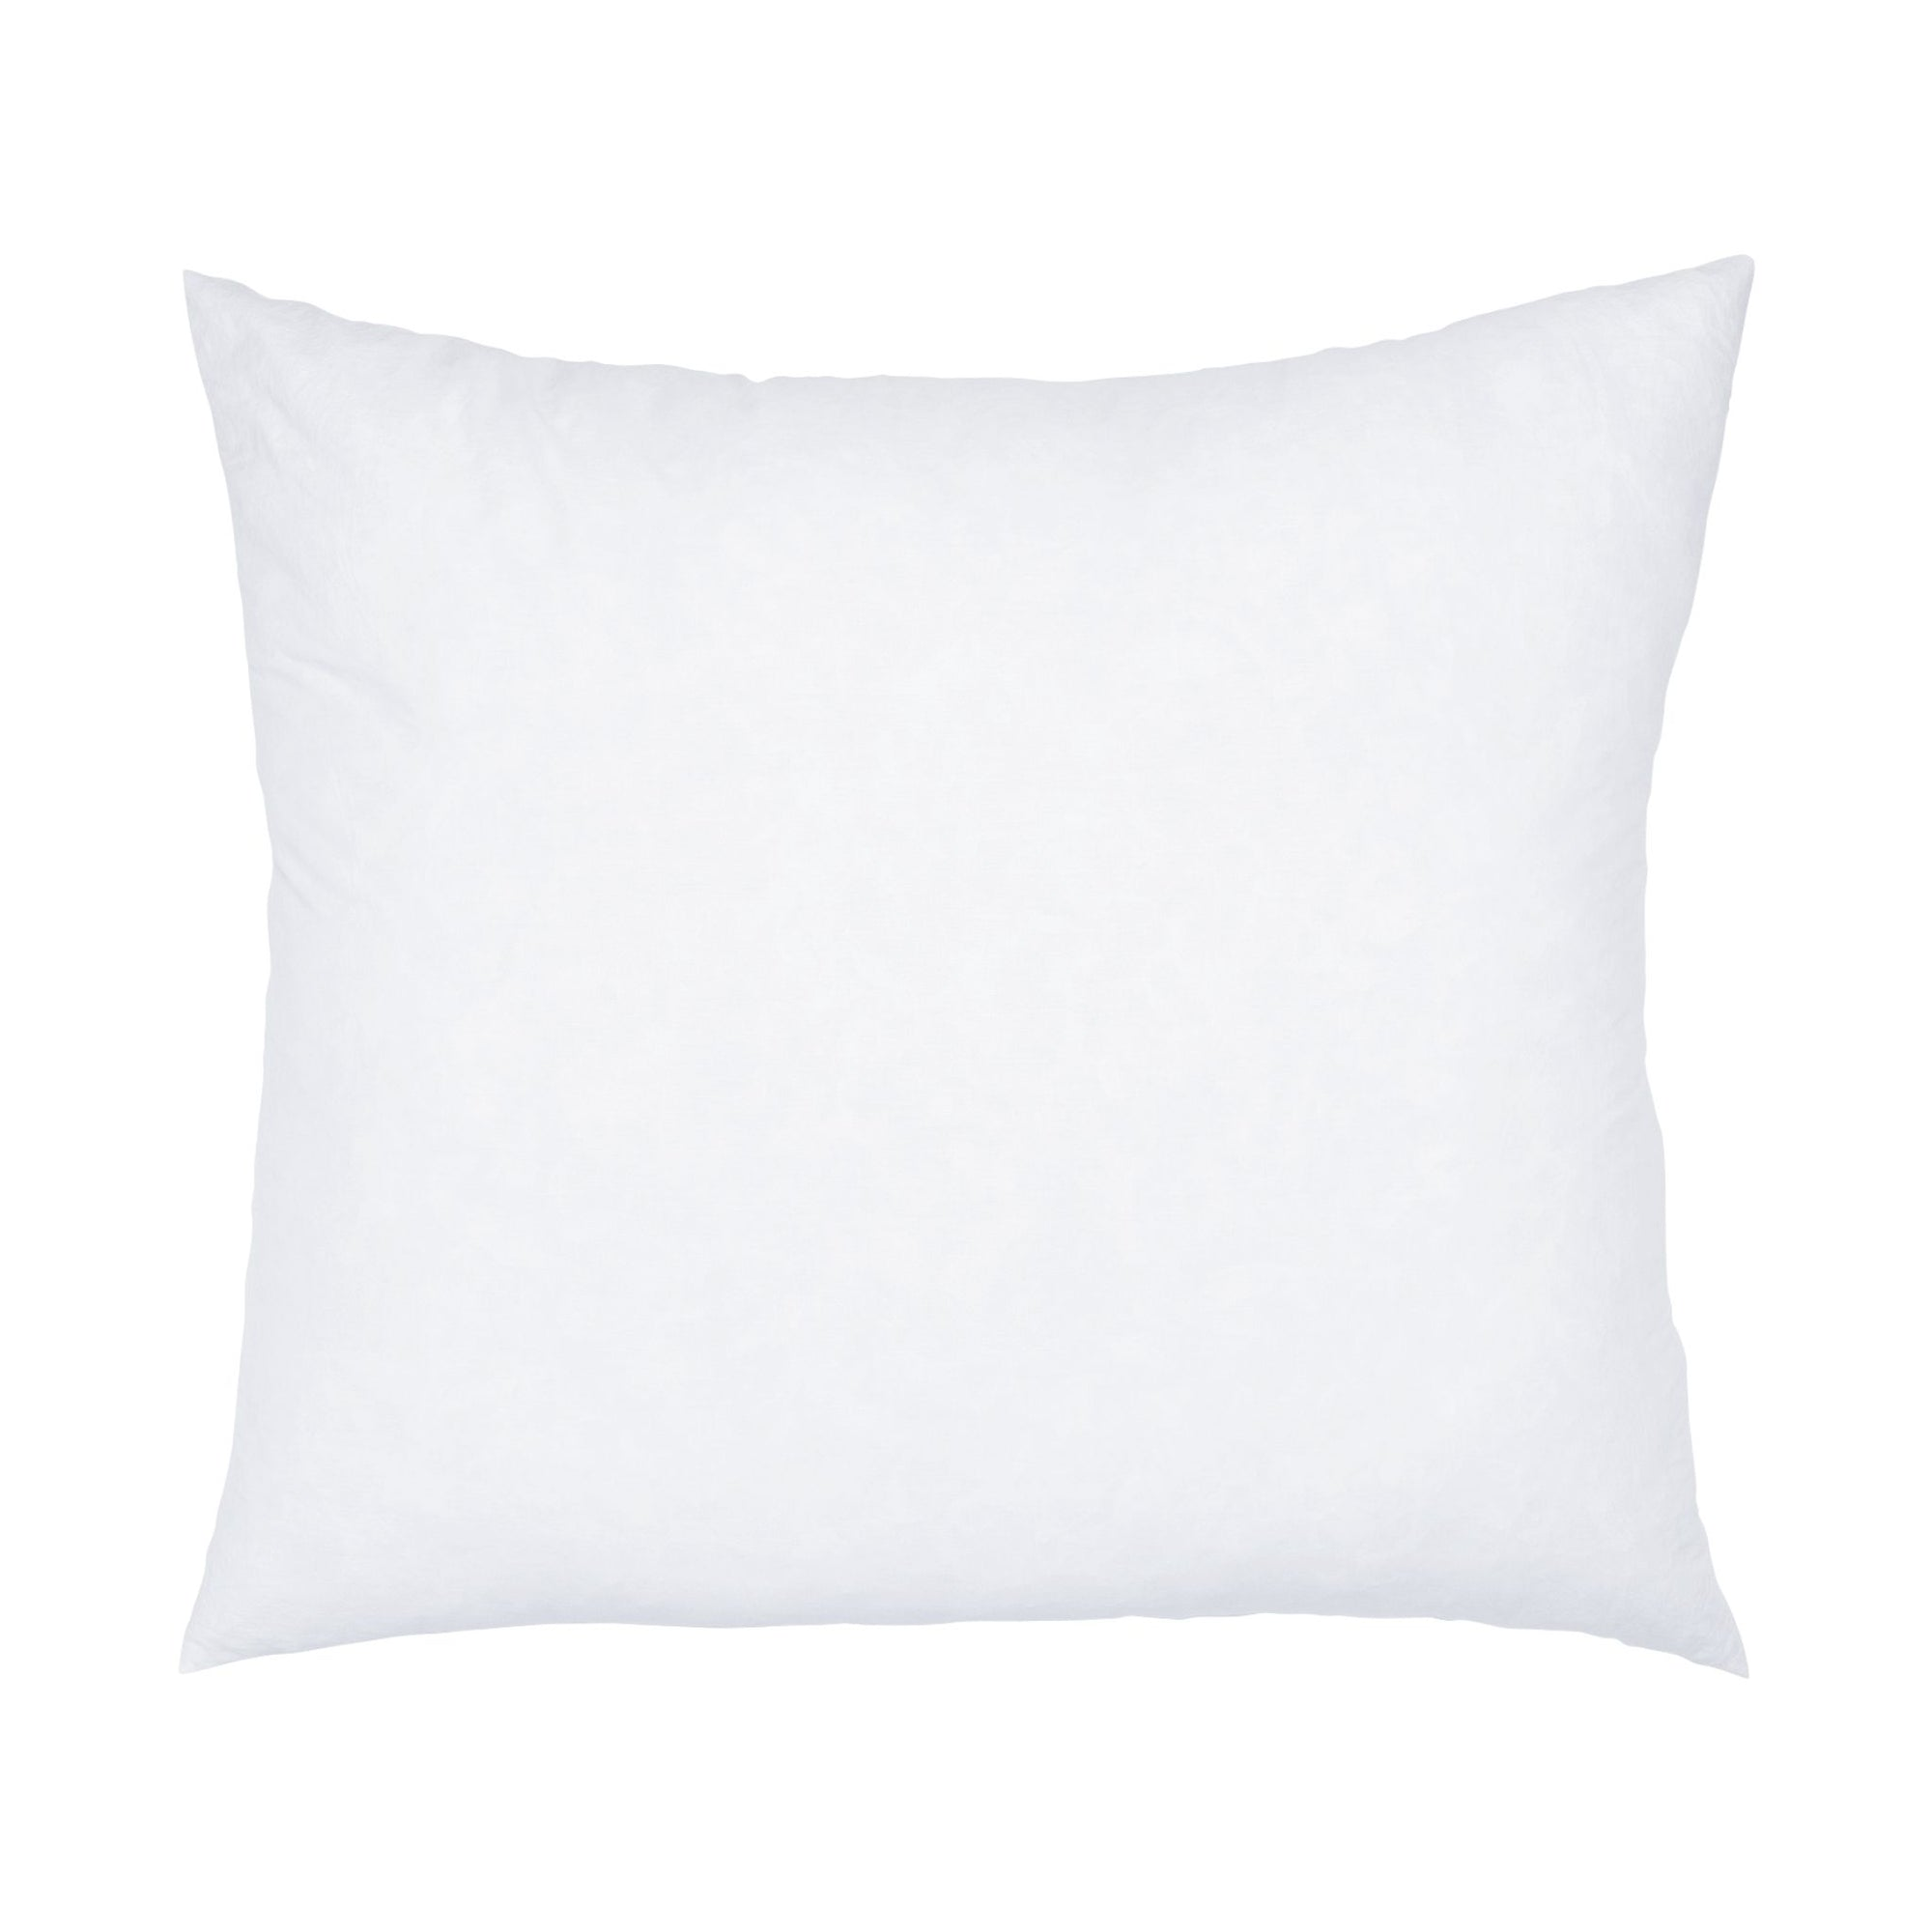 "30"" x 34"" Pillow Insert"